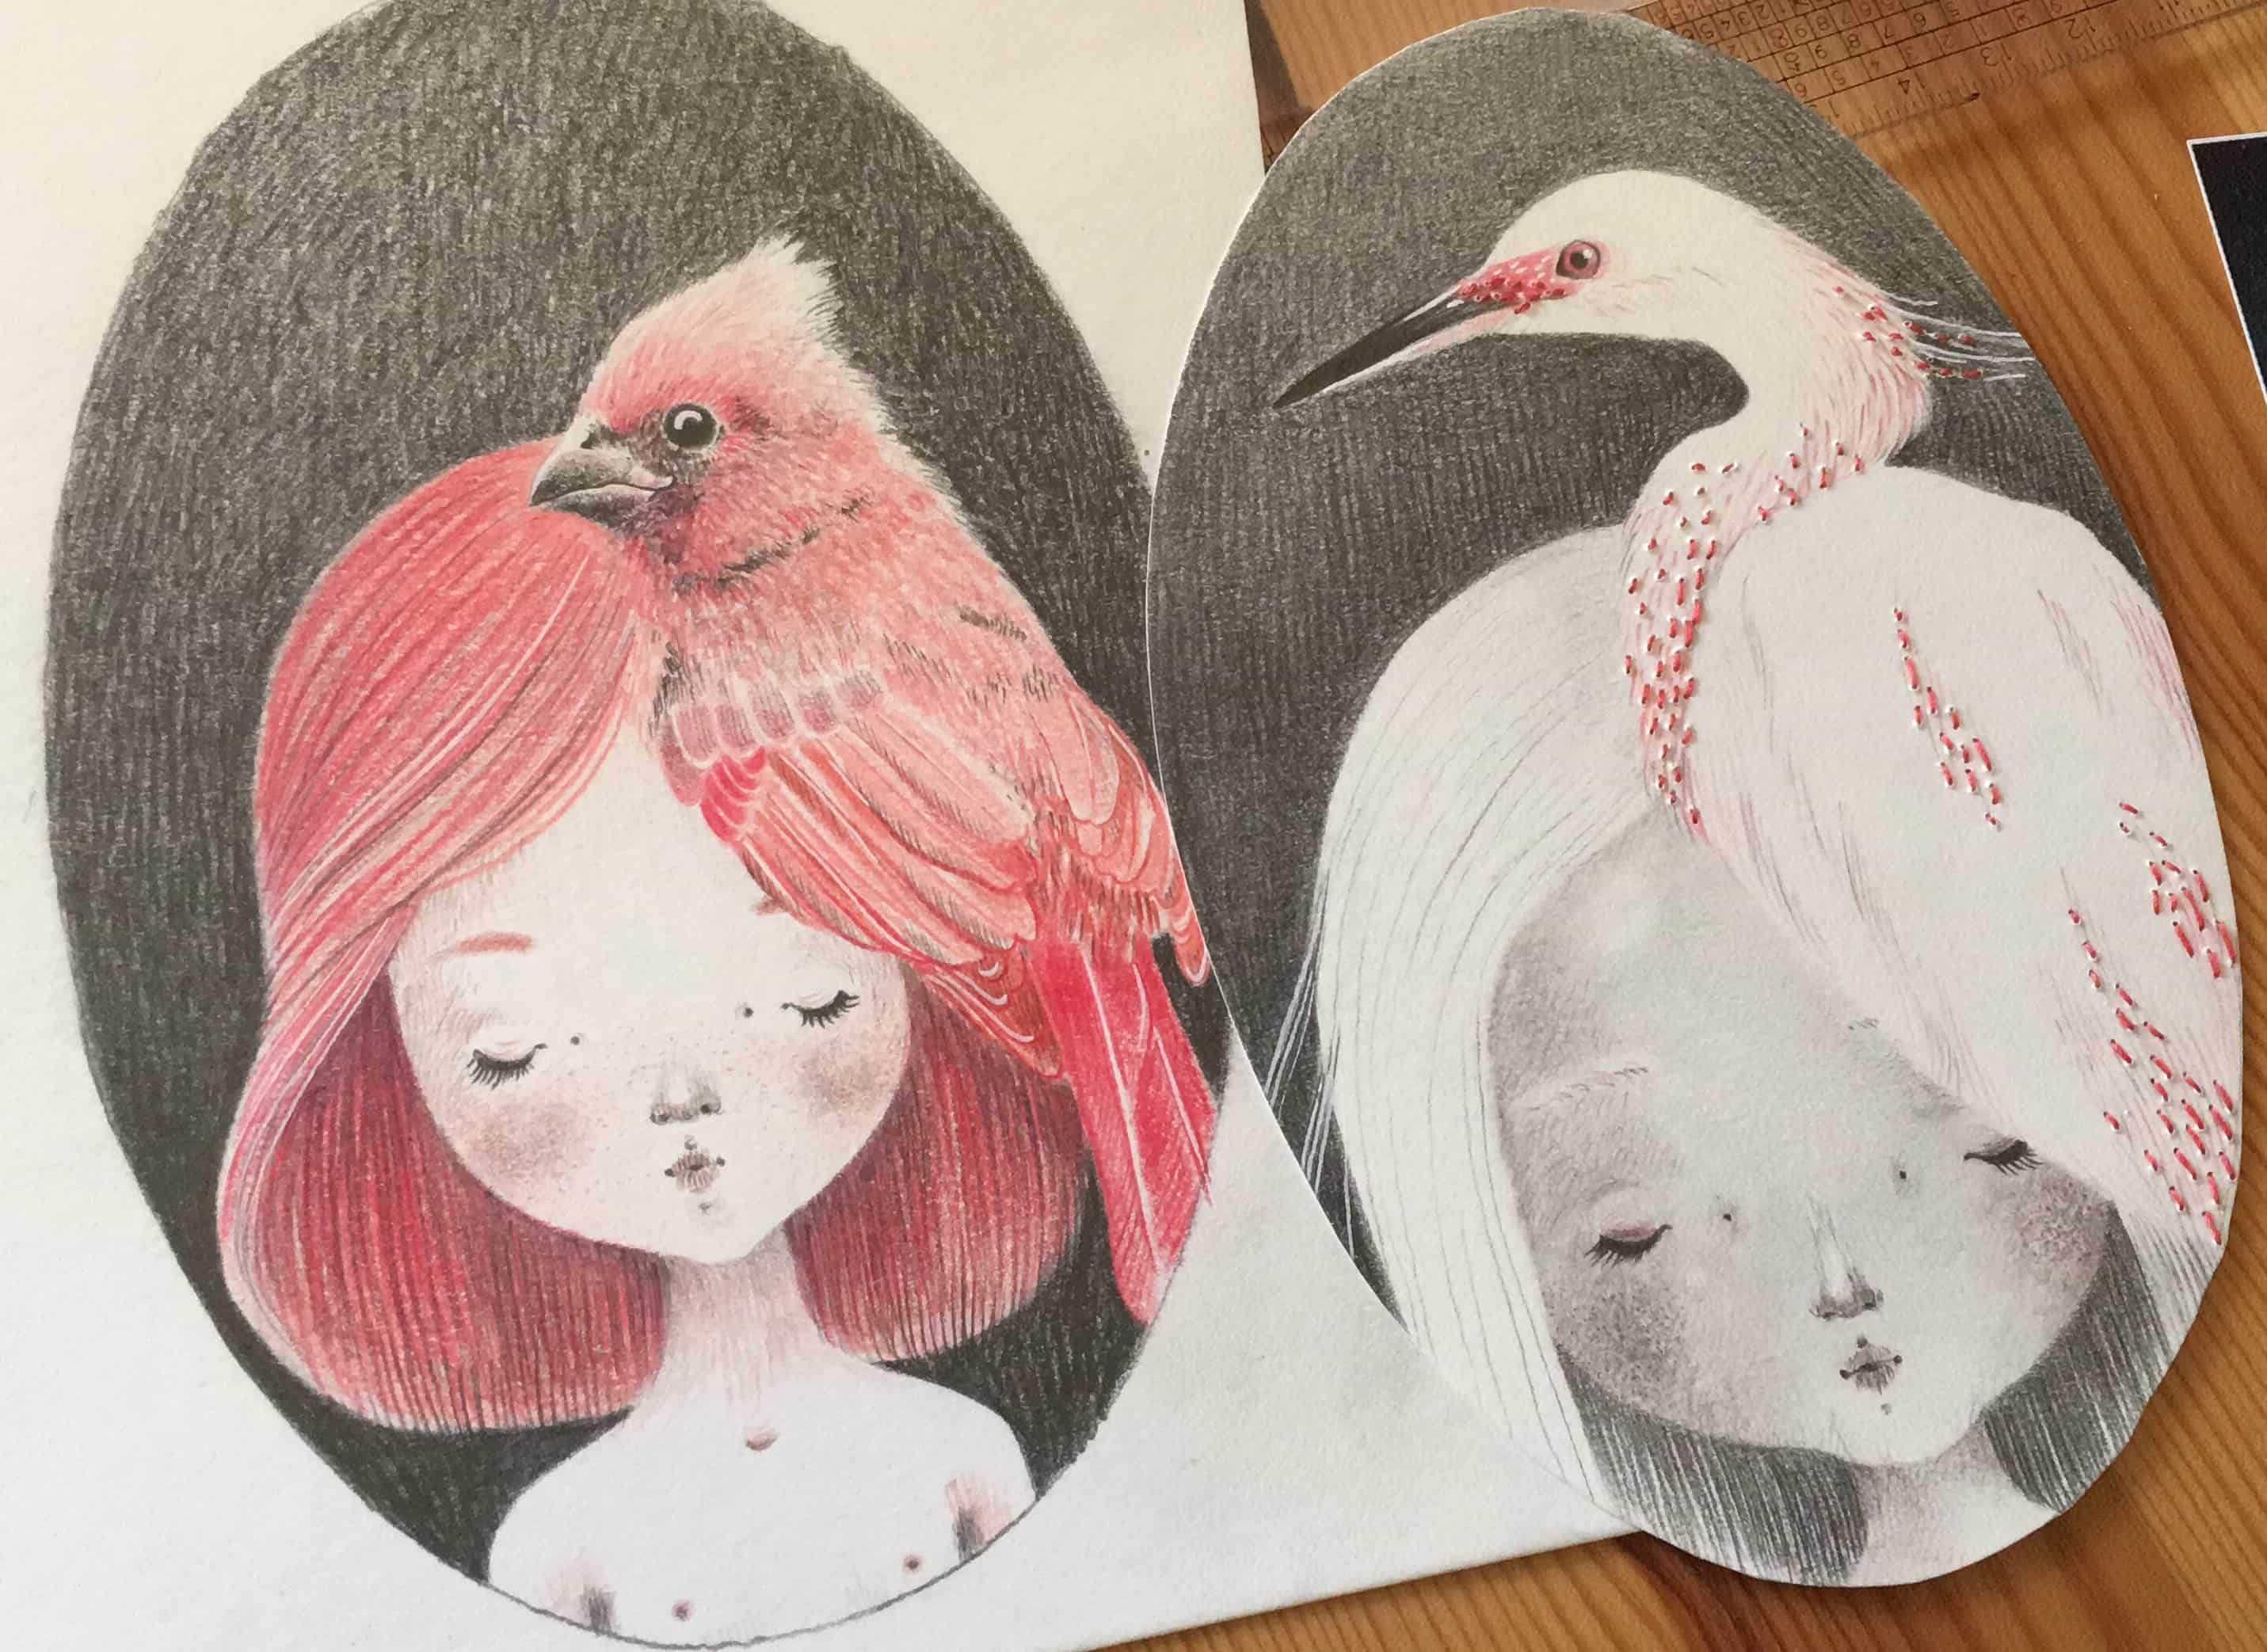 seforapons-graphite-embroidering-coloredpencil-pink-bird-girl-symbiosis-momoirochan-2